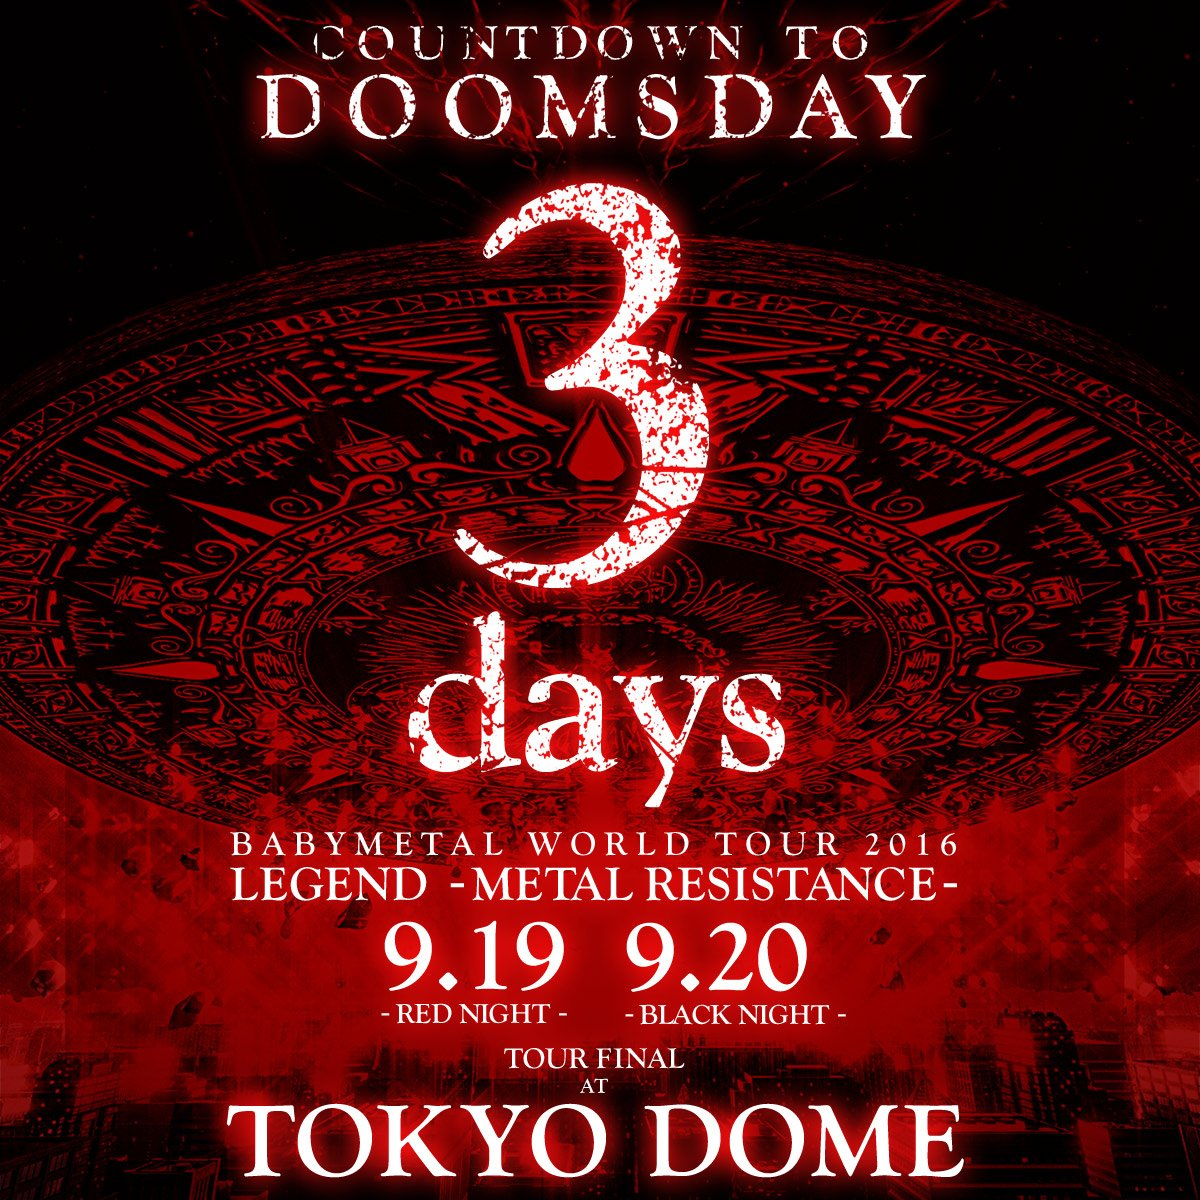 #BABYMETAL #TOKYODOME #東京ドーム #THEONE #DOOMSDAY https;//t.co/QhSzVynnYU